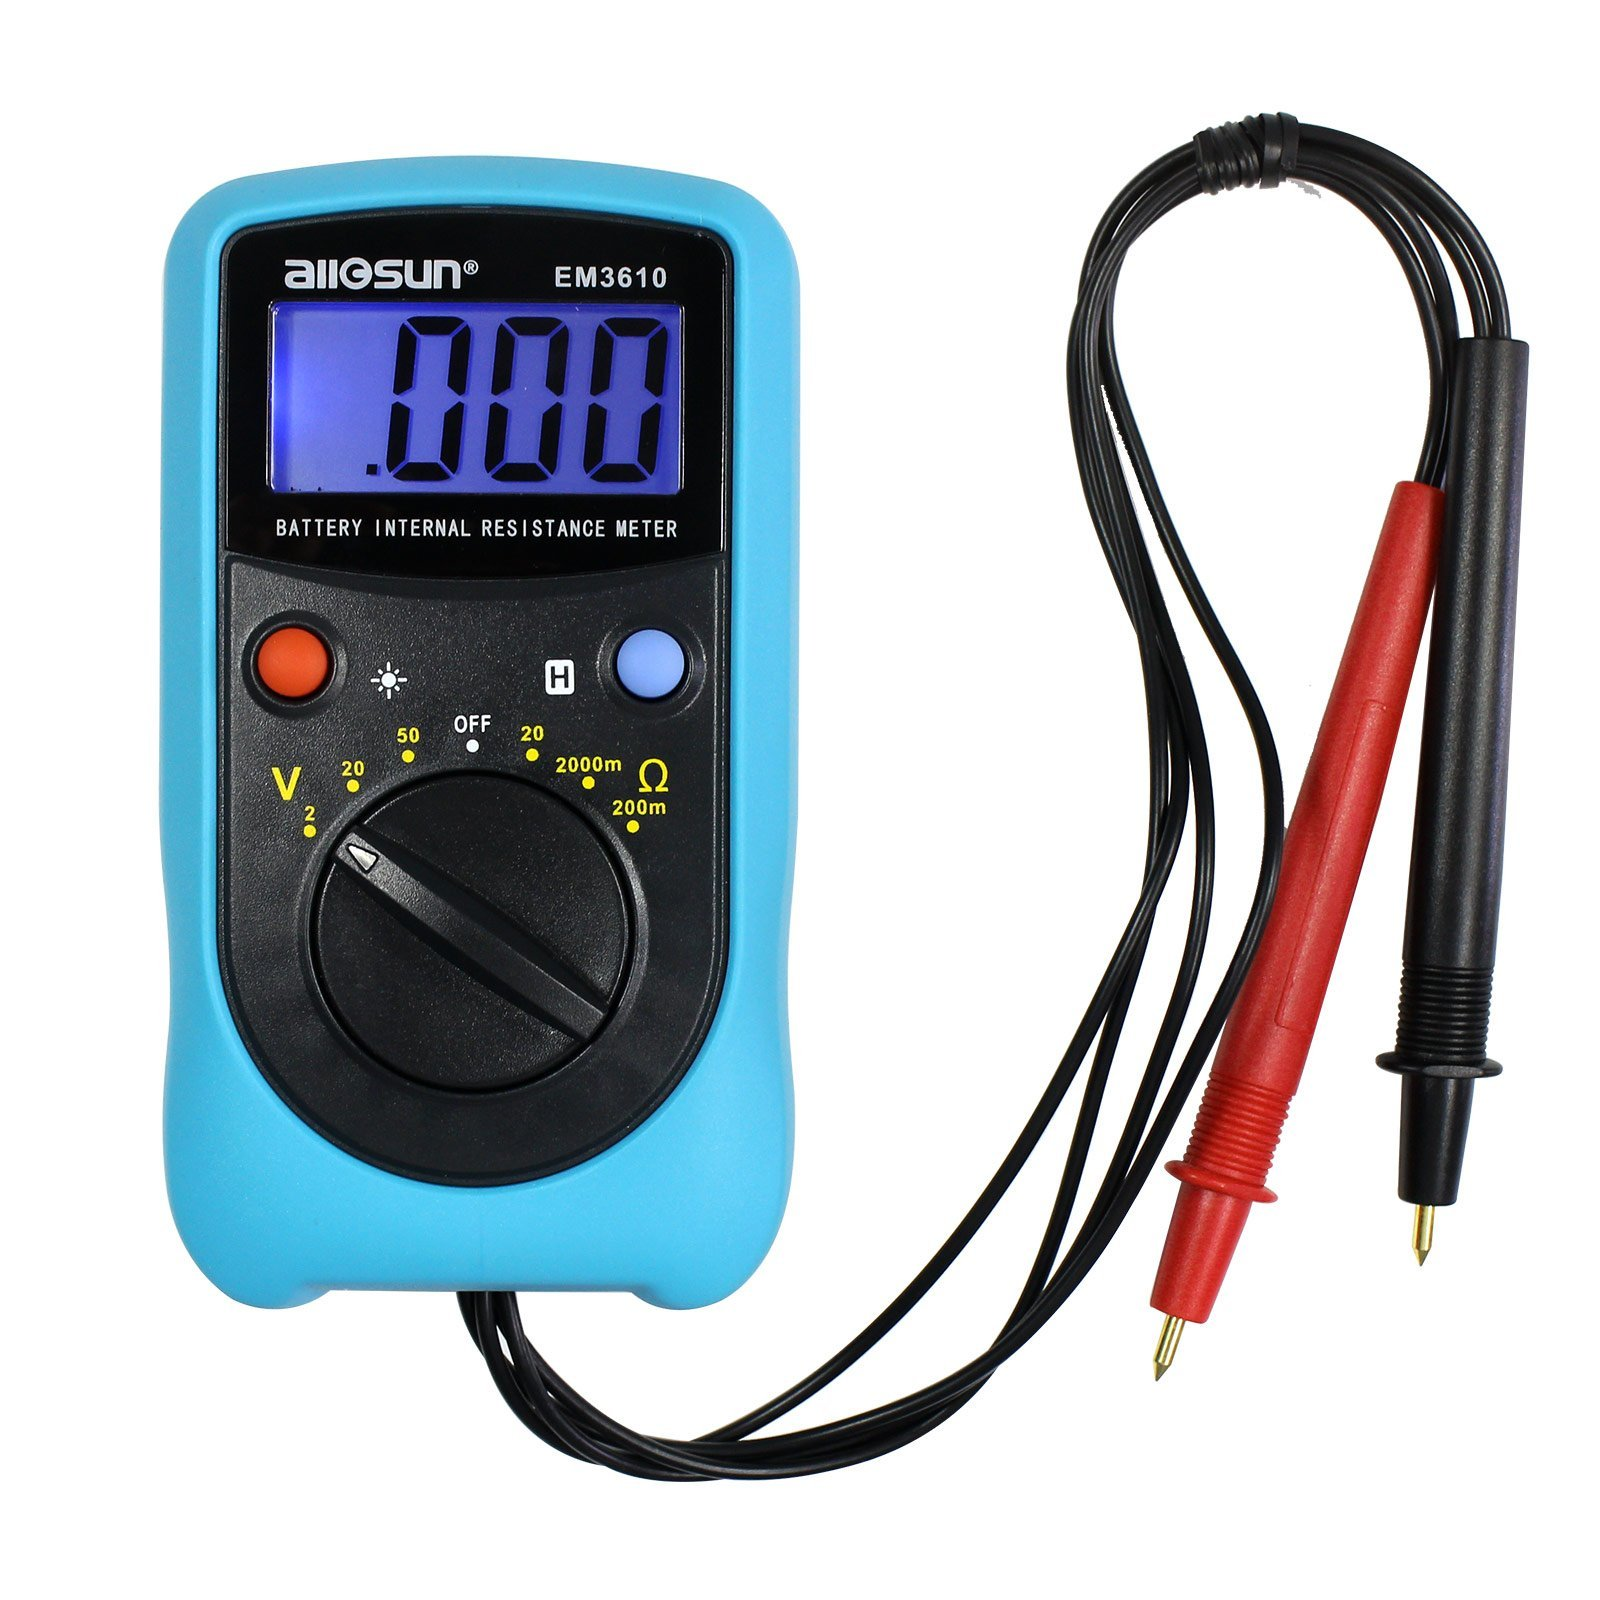 Cheap Internal Resistance Battery Find Laptop Multimeter Tests Checking Voltage And Short Circuits Get Quotations All Sun Meter Tester Digital Analyzer